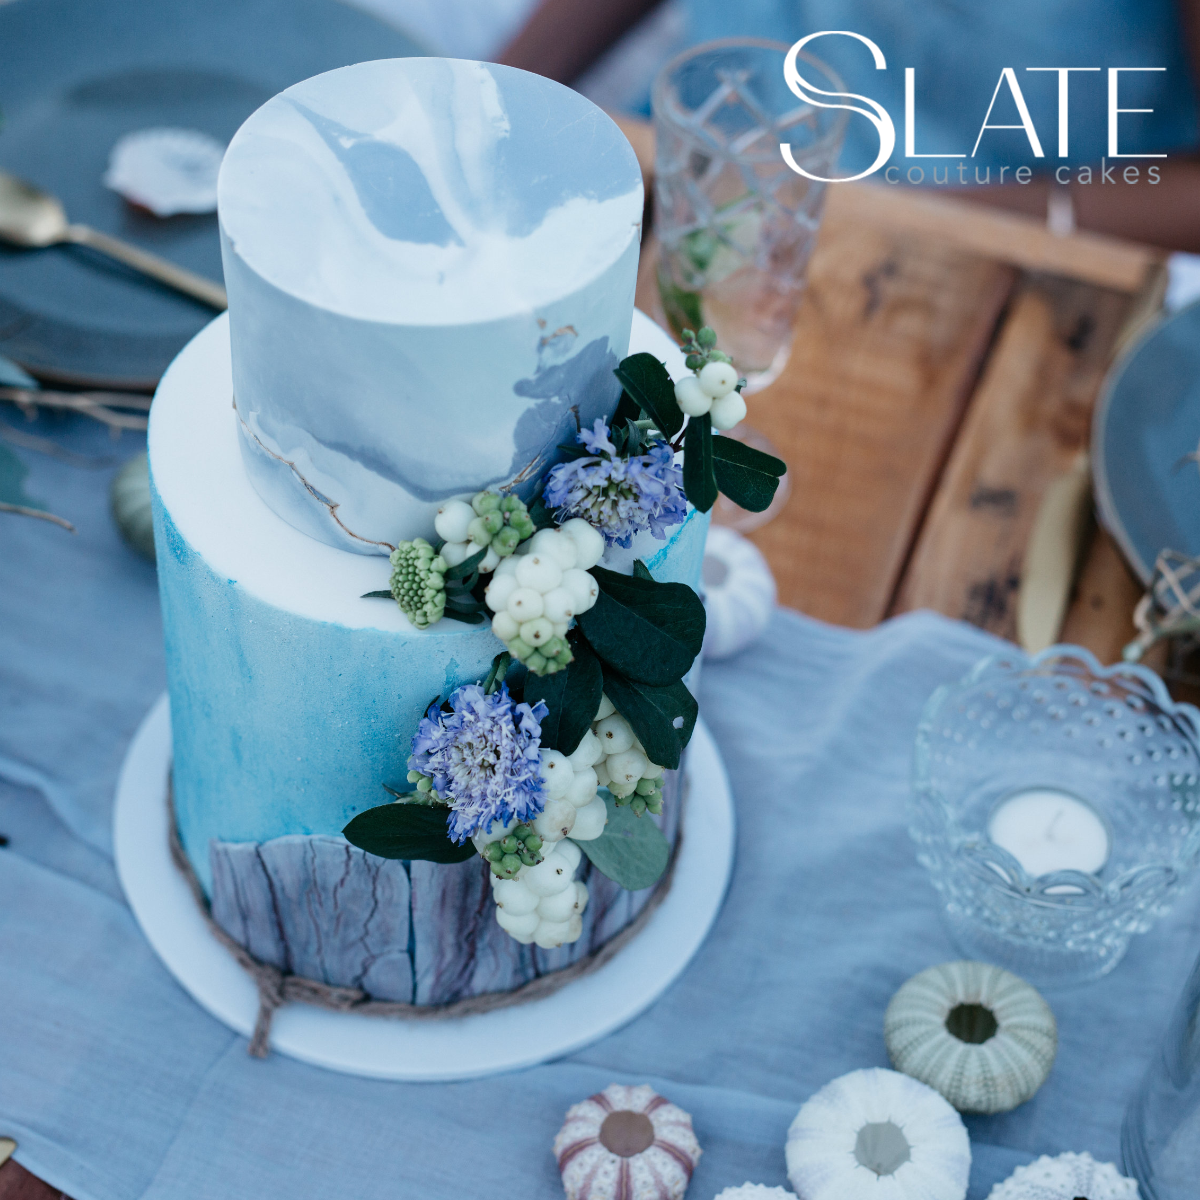 Rustic blue bark wedding cake with sugar flowers